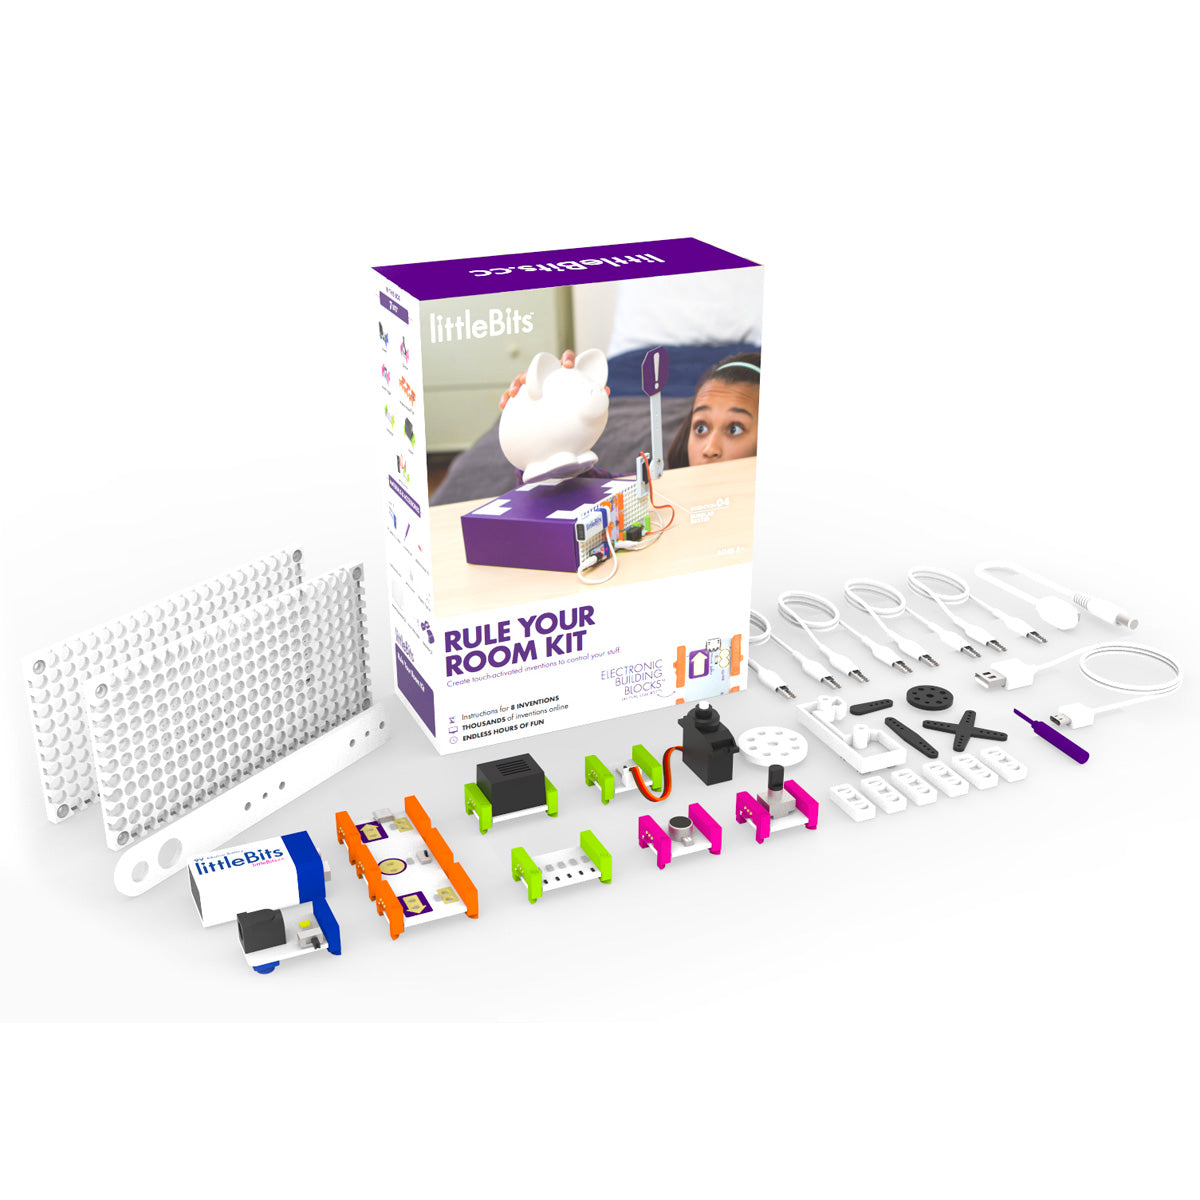 Littlebits Rule Your Room Kit Stem Supplies Circuit Scribe And Chibitronics Review No Reviews